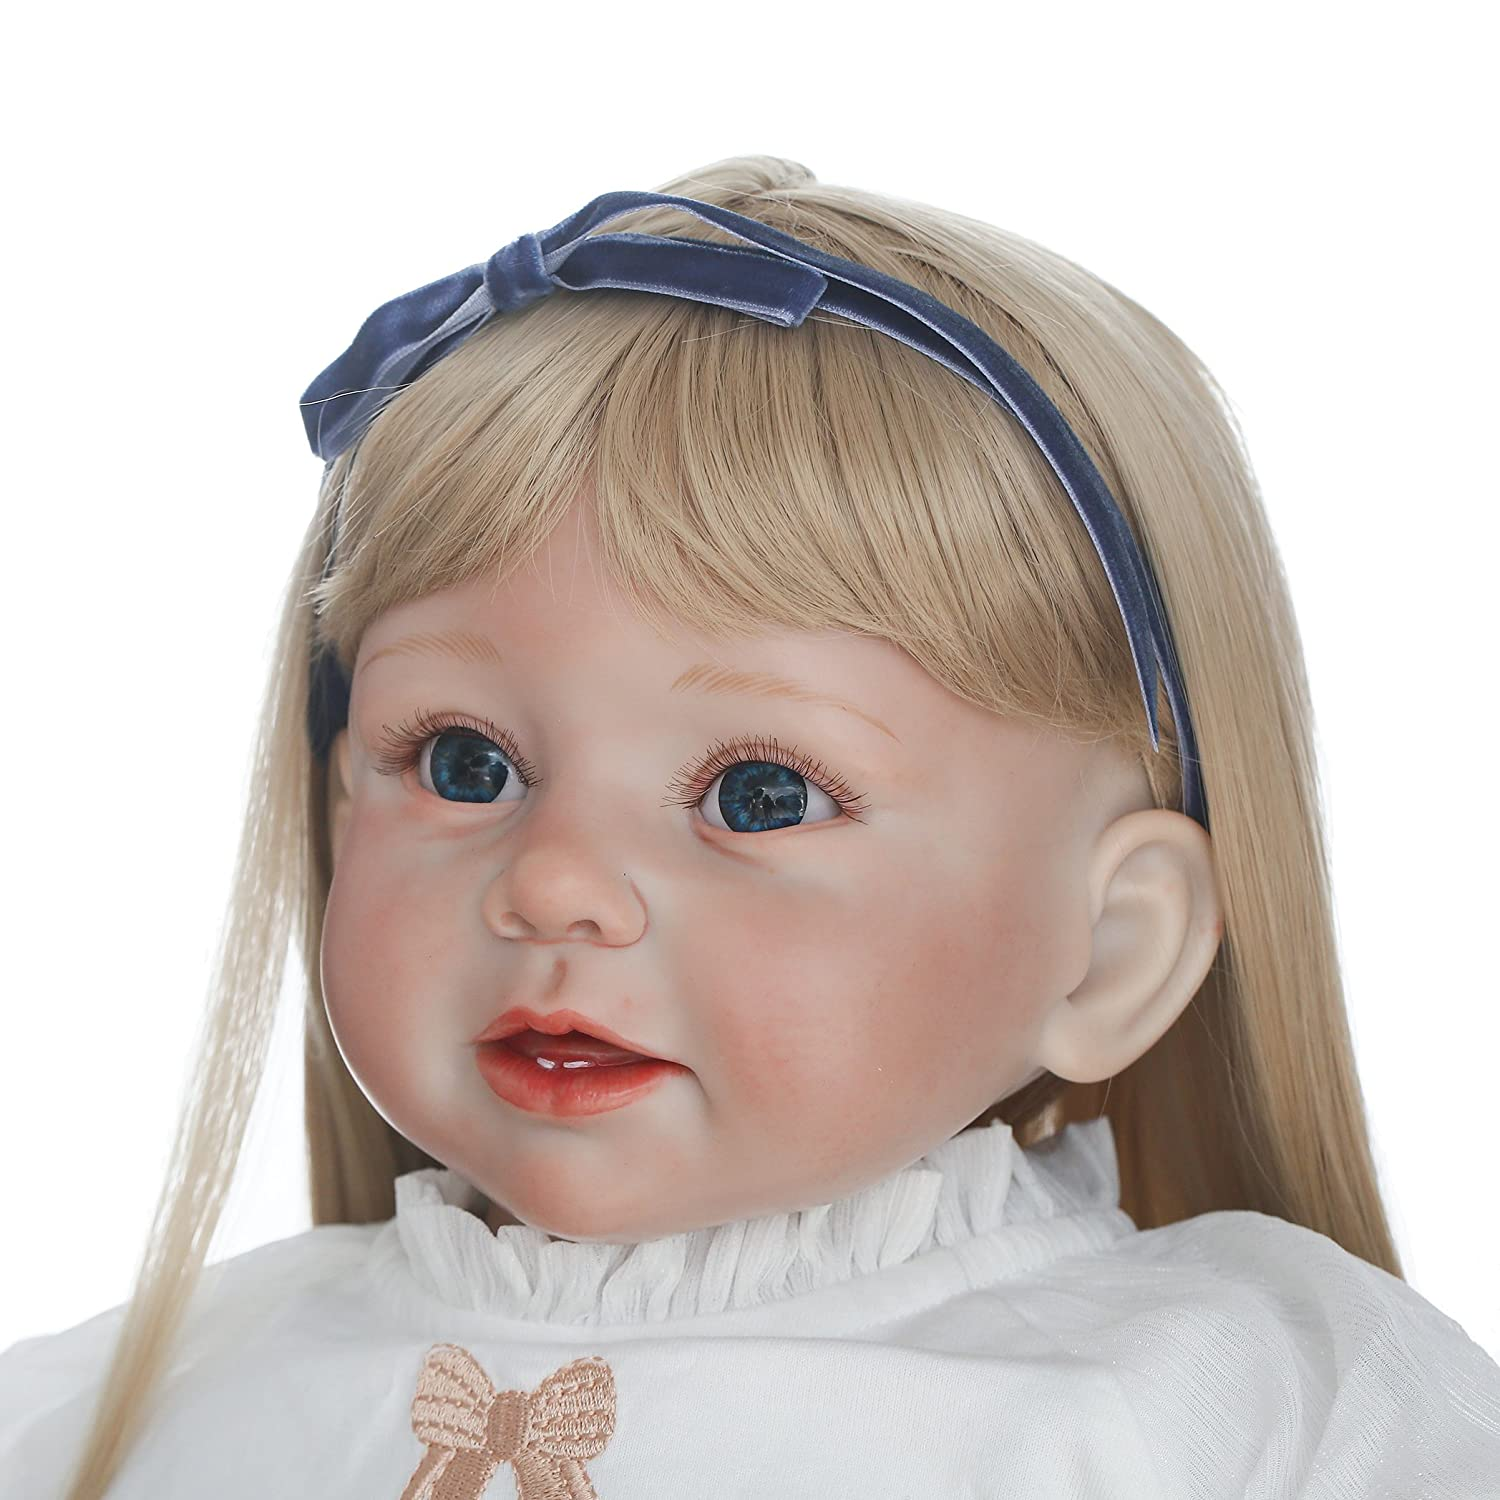 Realistic Reborn Toddler Doll Girl 28 Inch Lifelike Toddlers Vinyl Silicone Dolls Golden Long Hair